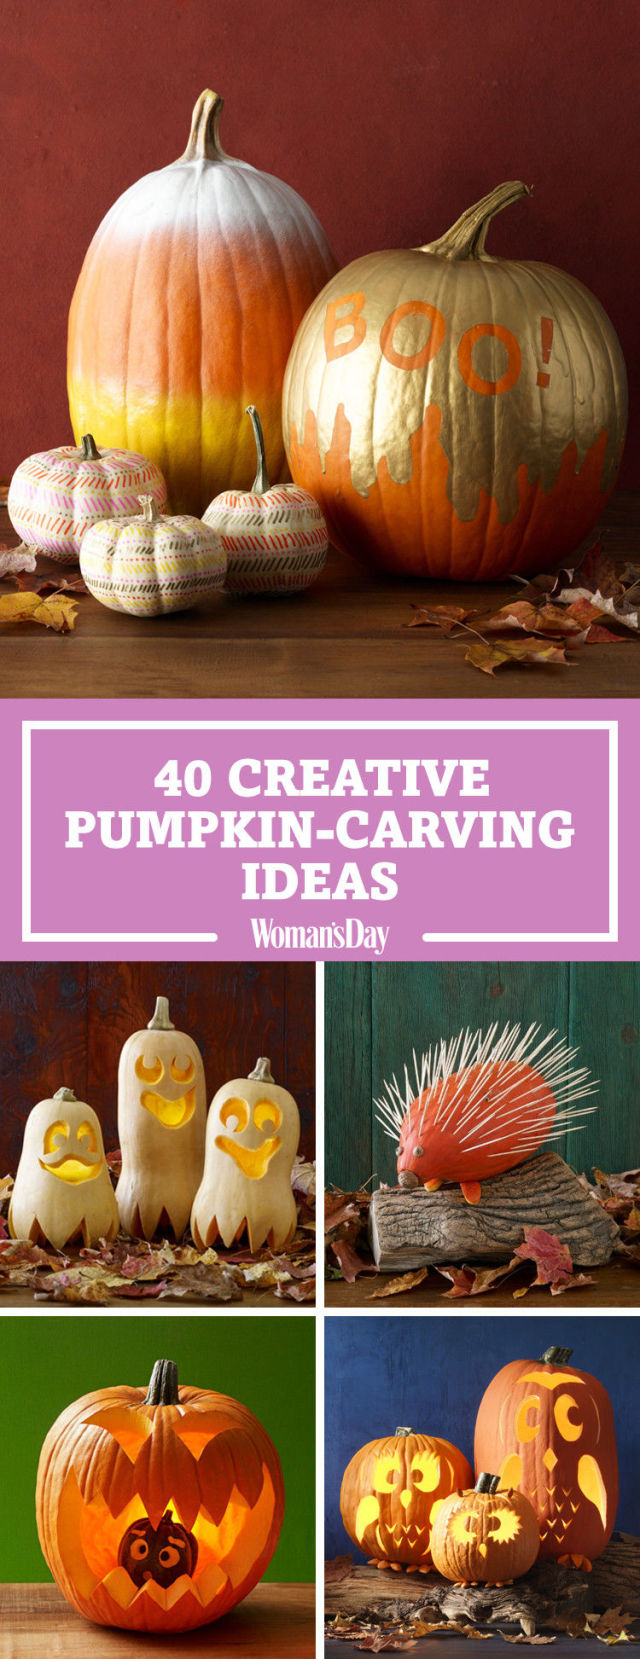 60+ Best Pumpkin Carving Ideas Halloween 2017 - Creative Jack o ...